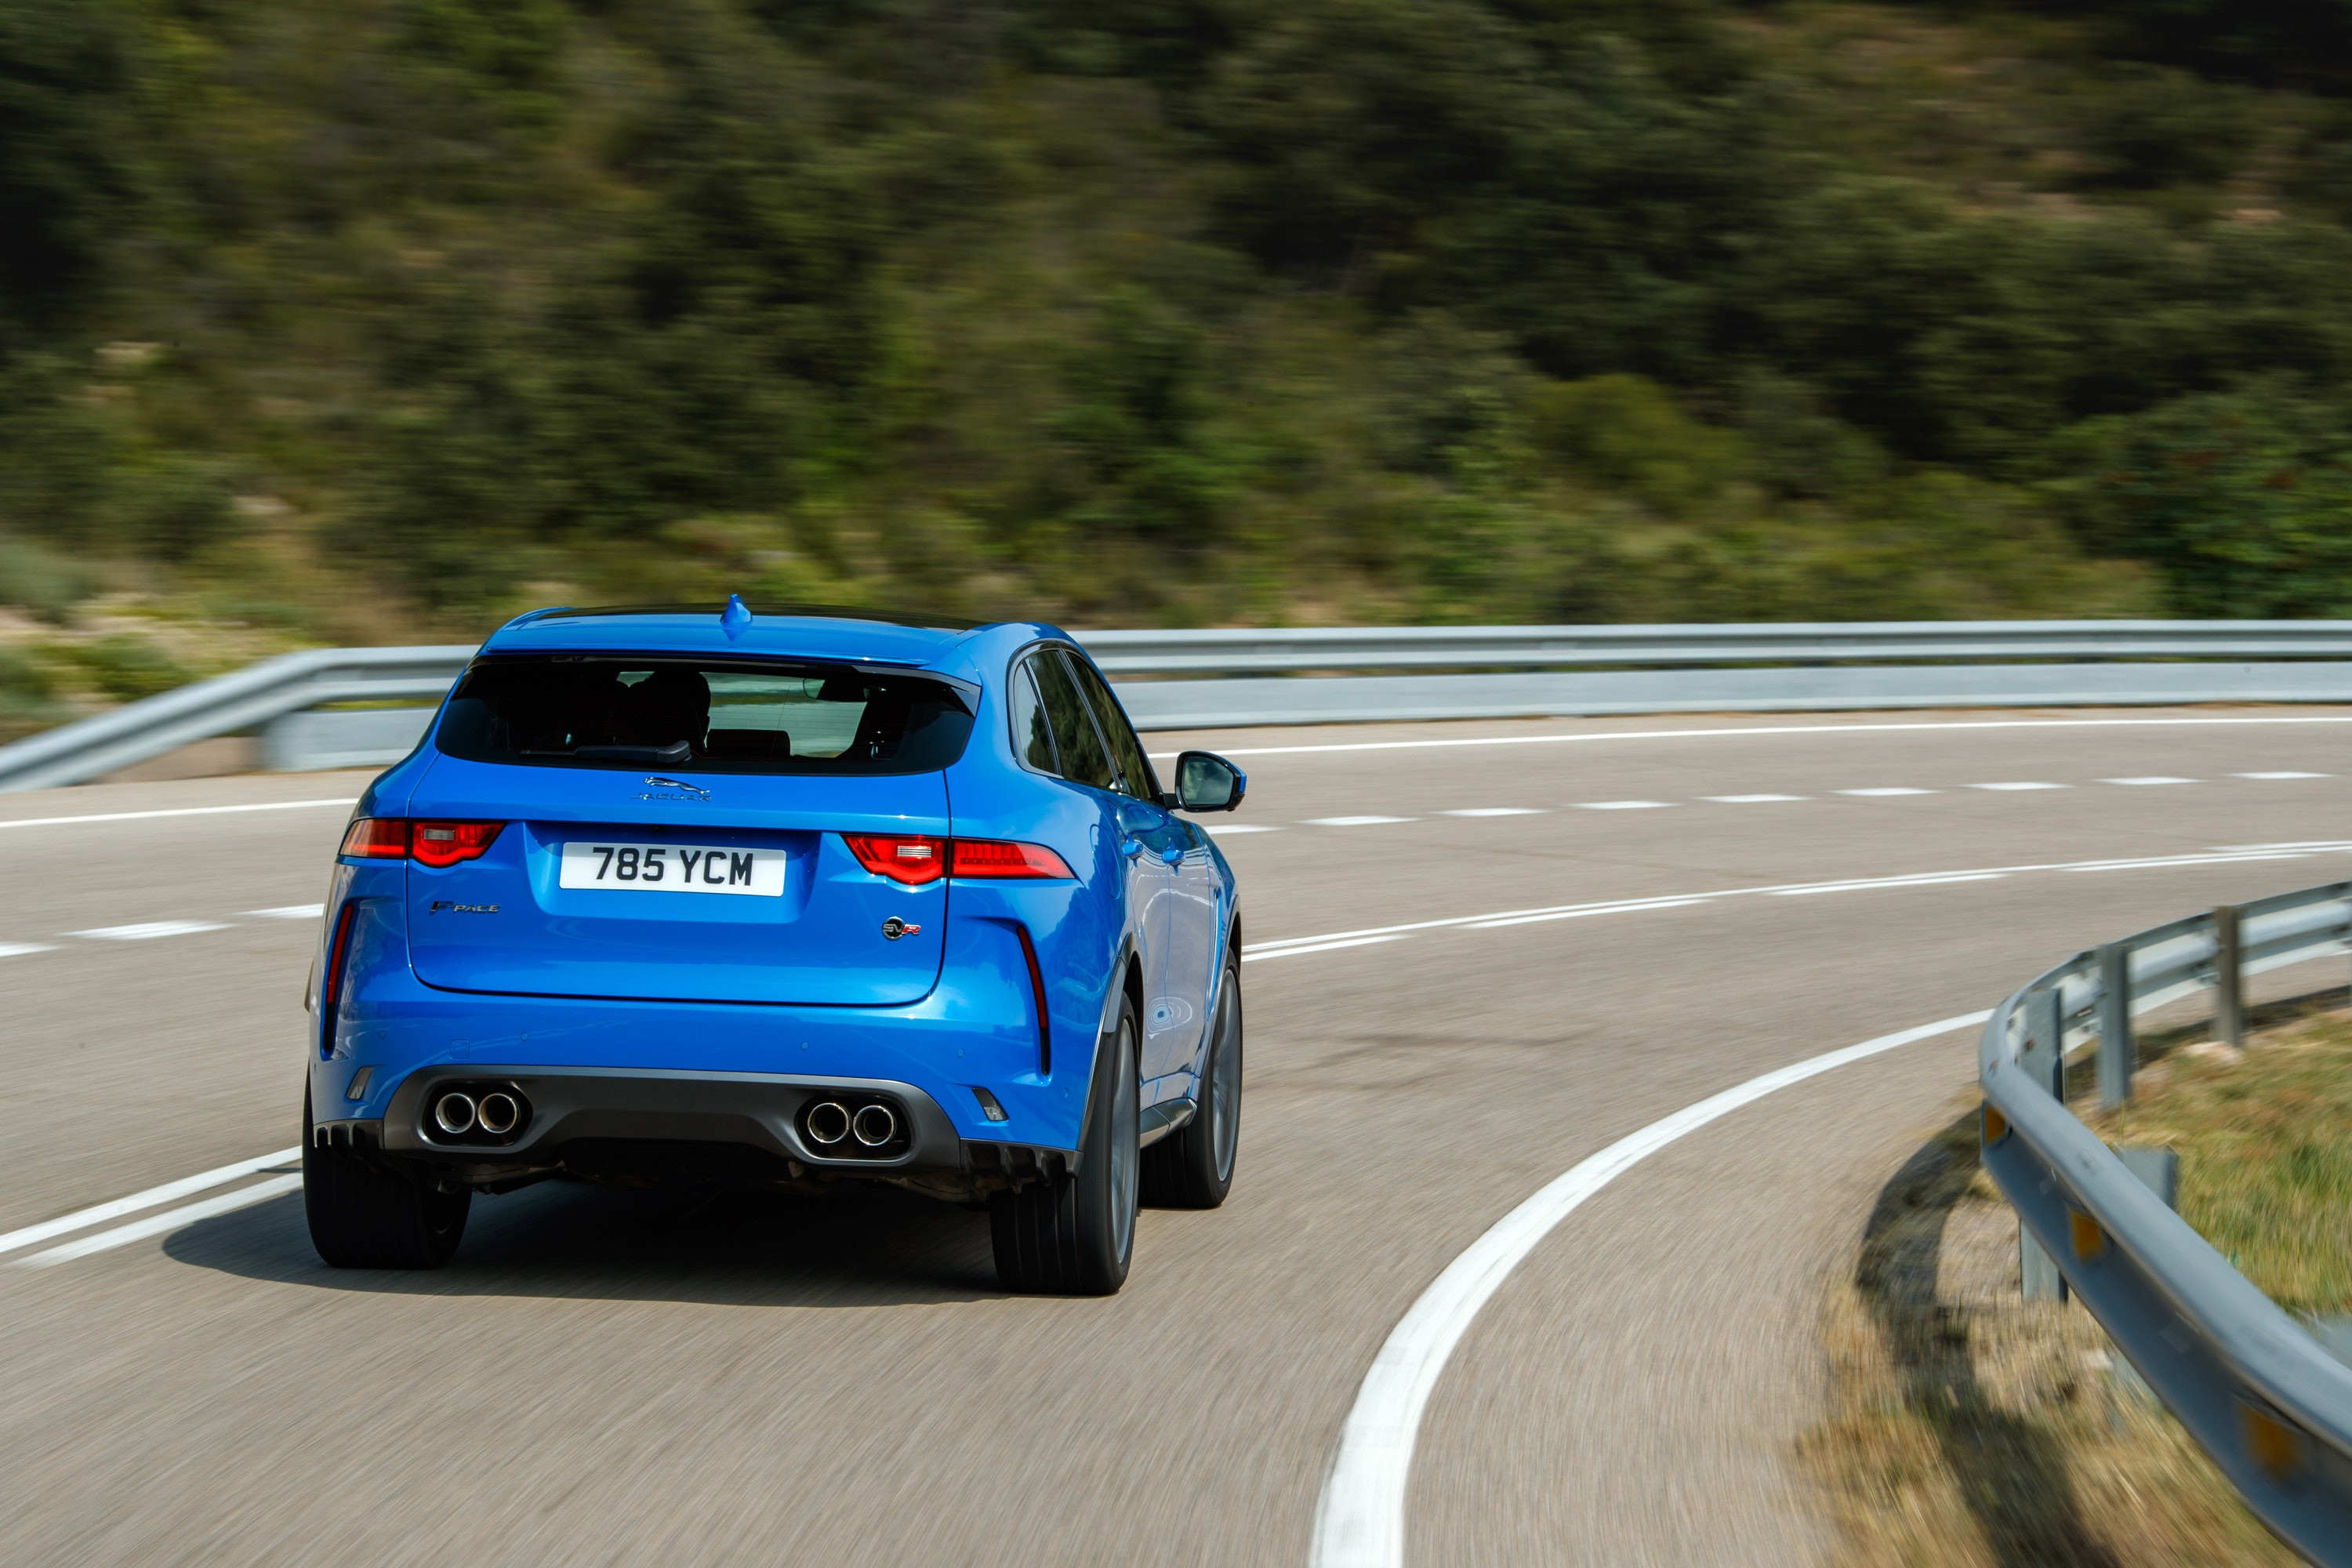 Rear of the Jaguar F-Pace SVR driving down the road